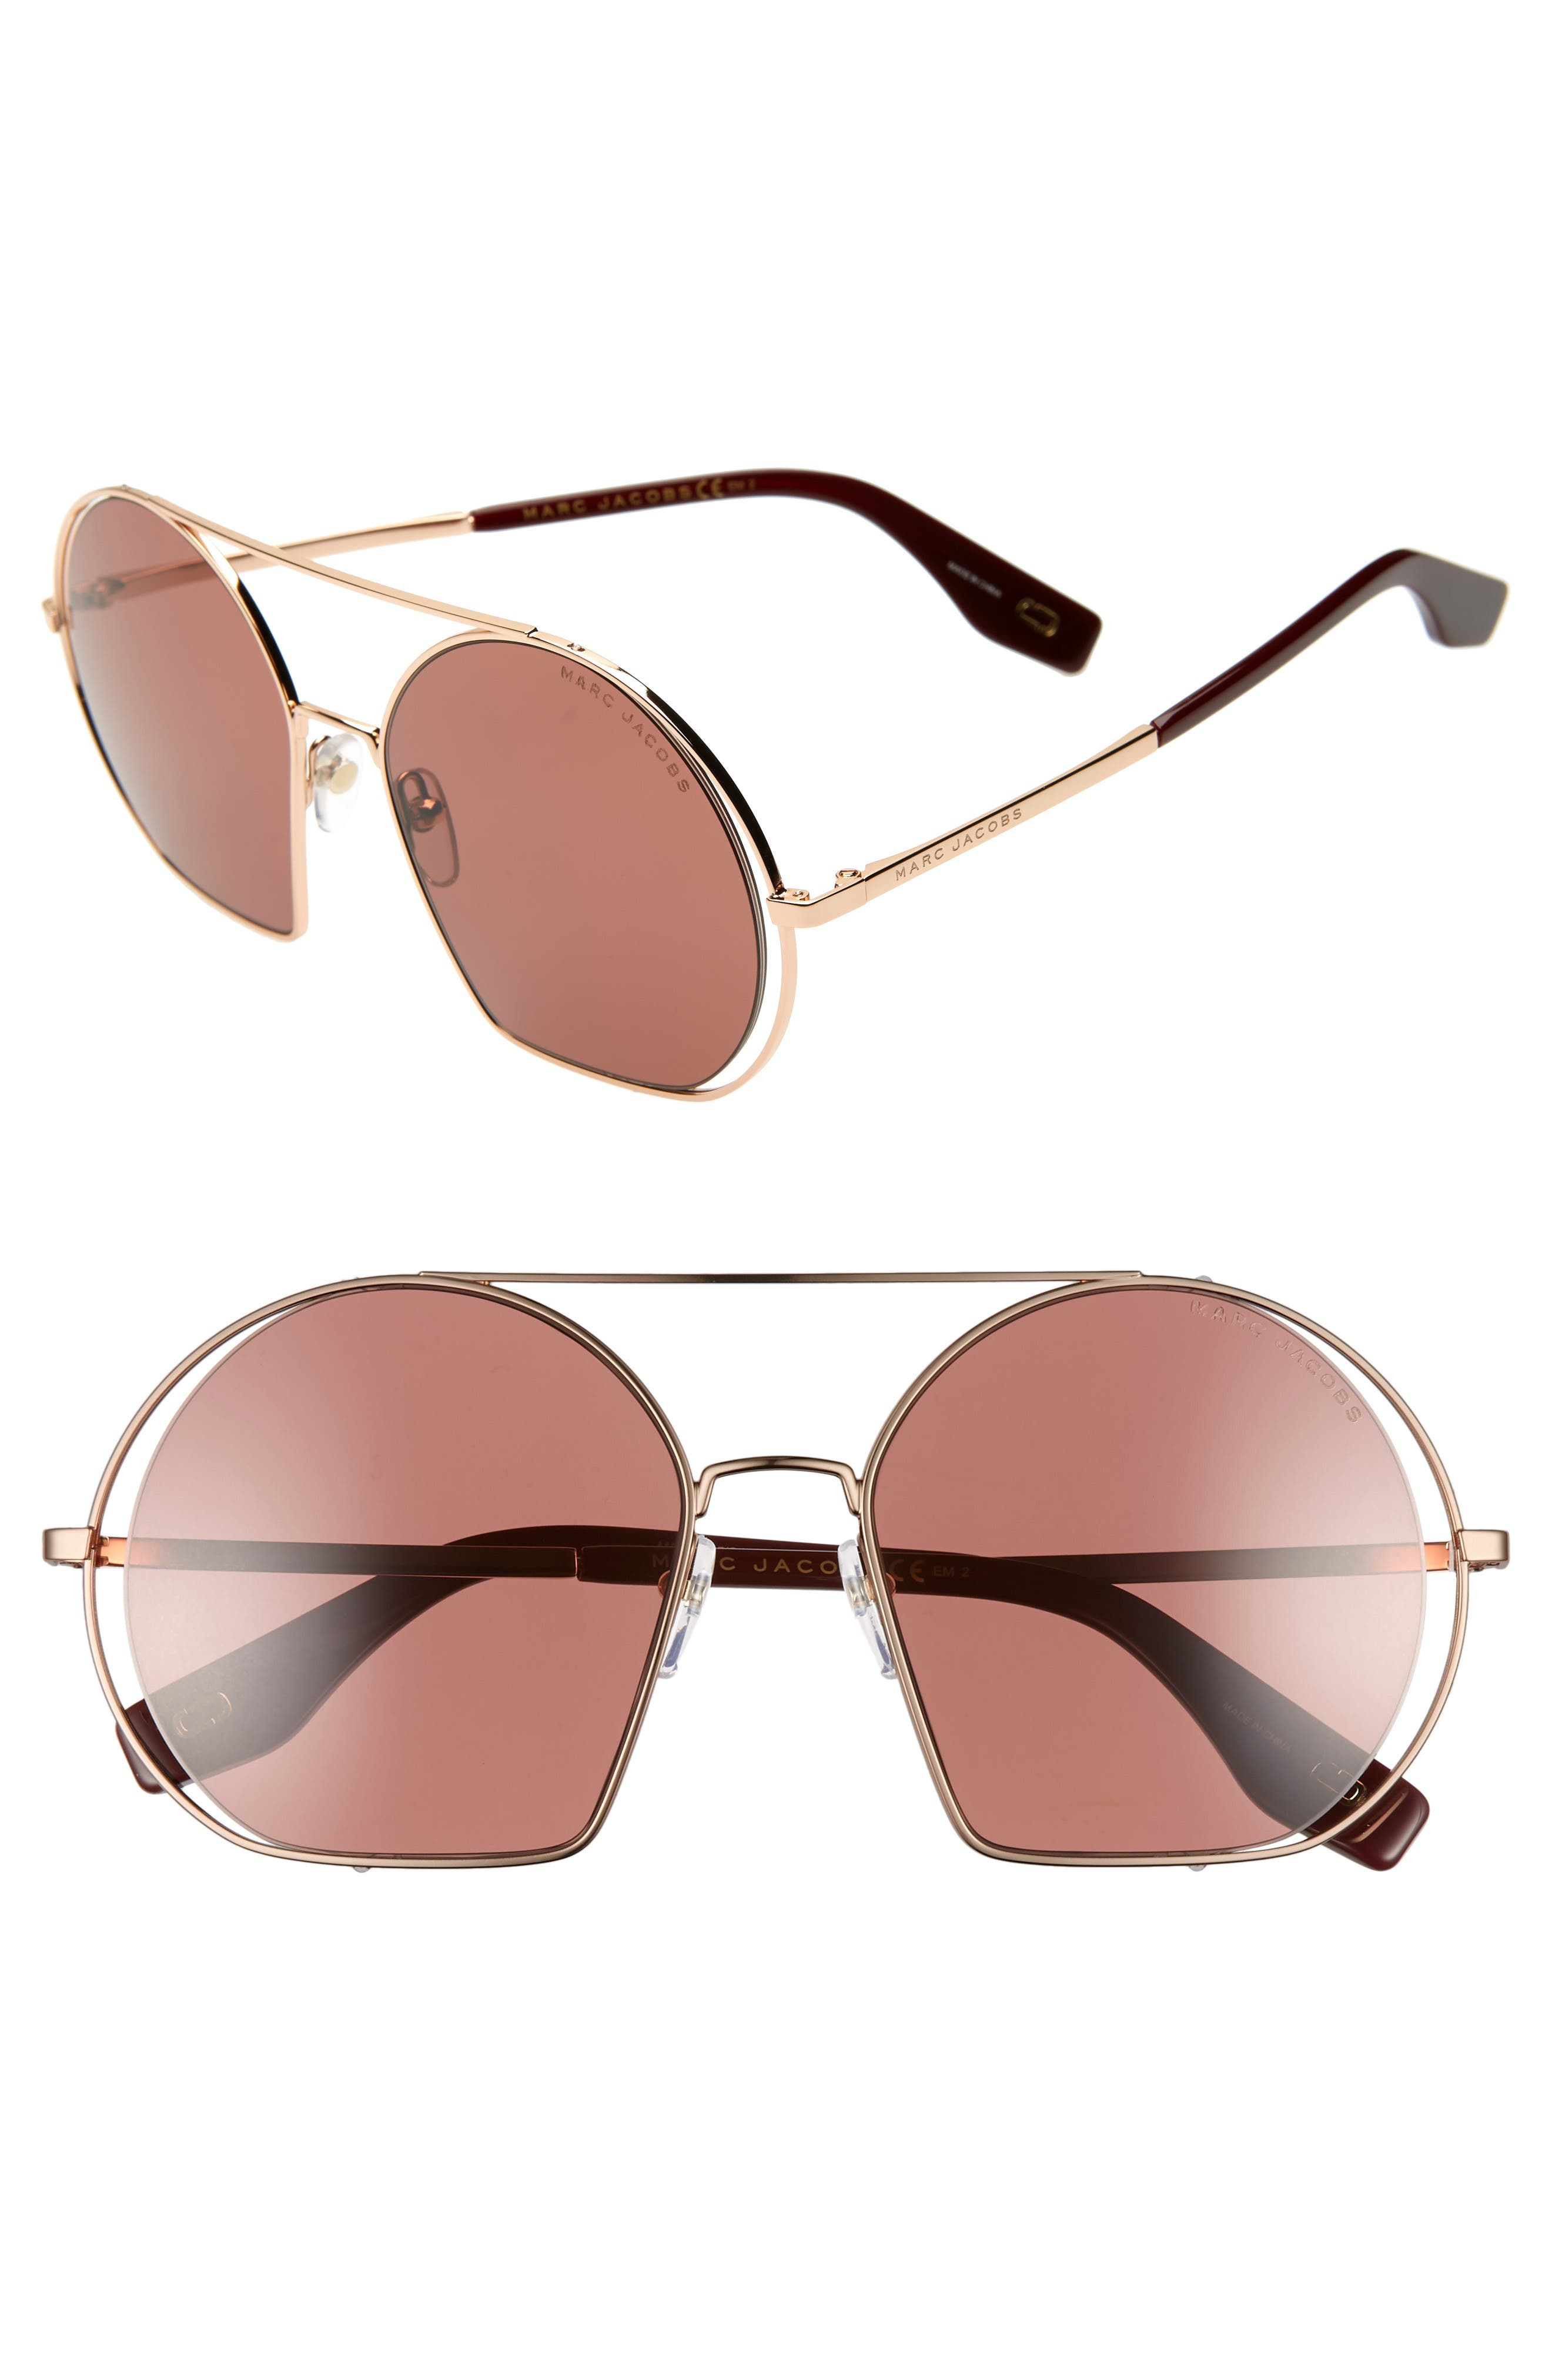 56mm Round Sunglasses,                         Main,                         color, GOLD/ BURGUNDY